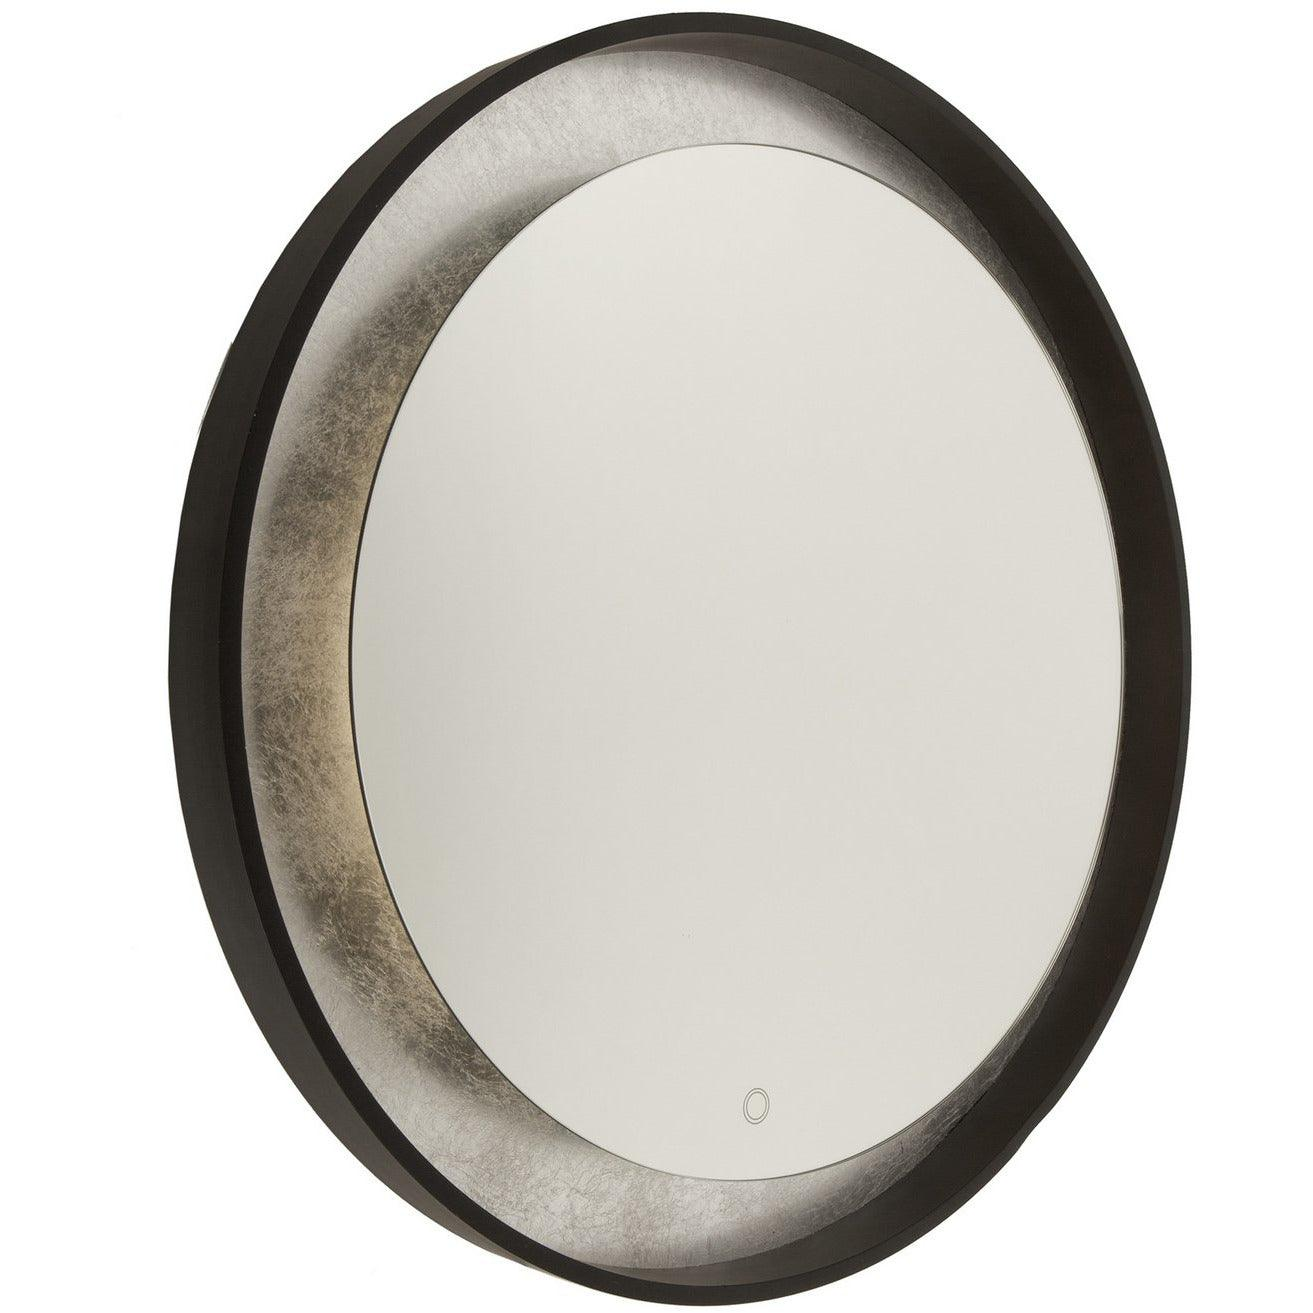 Artcraft Lighting - AM305 - LED Mirror - Reflections - Oil Rubbed Bronze & Silver Leaf